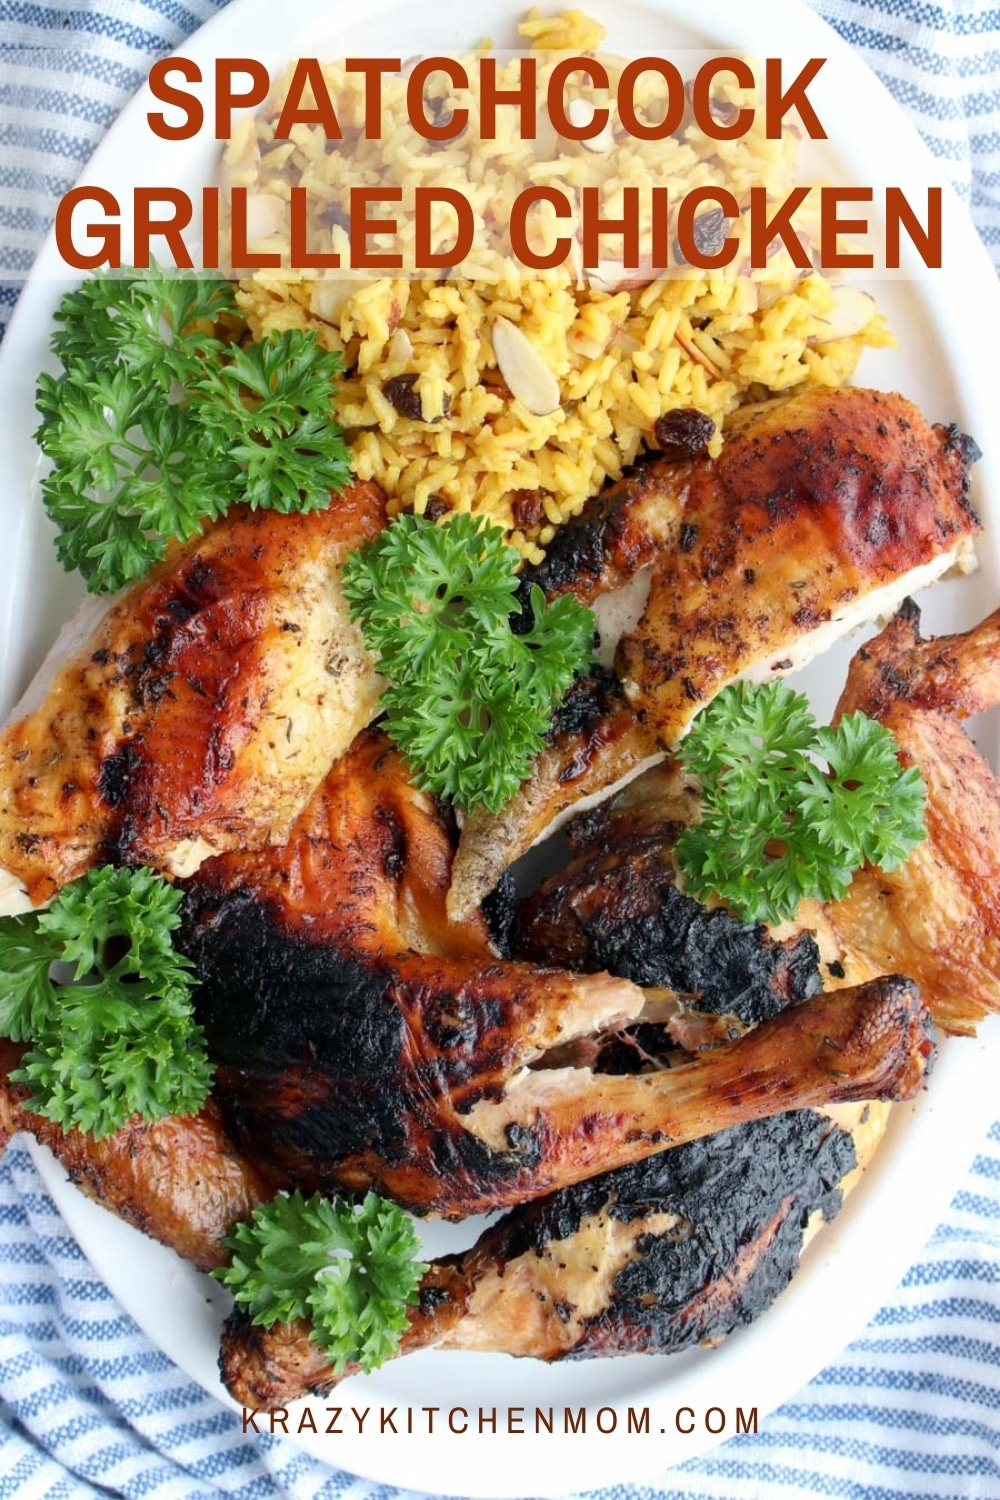 Juicy, tender, grilled chicken rubbed with herbs and spices and flattened for grilling. Spatchcocking the chicken allows it to cook evenly. via @krazykitchenmom